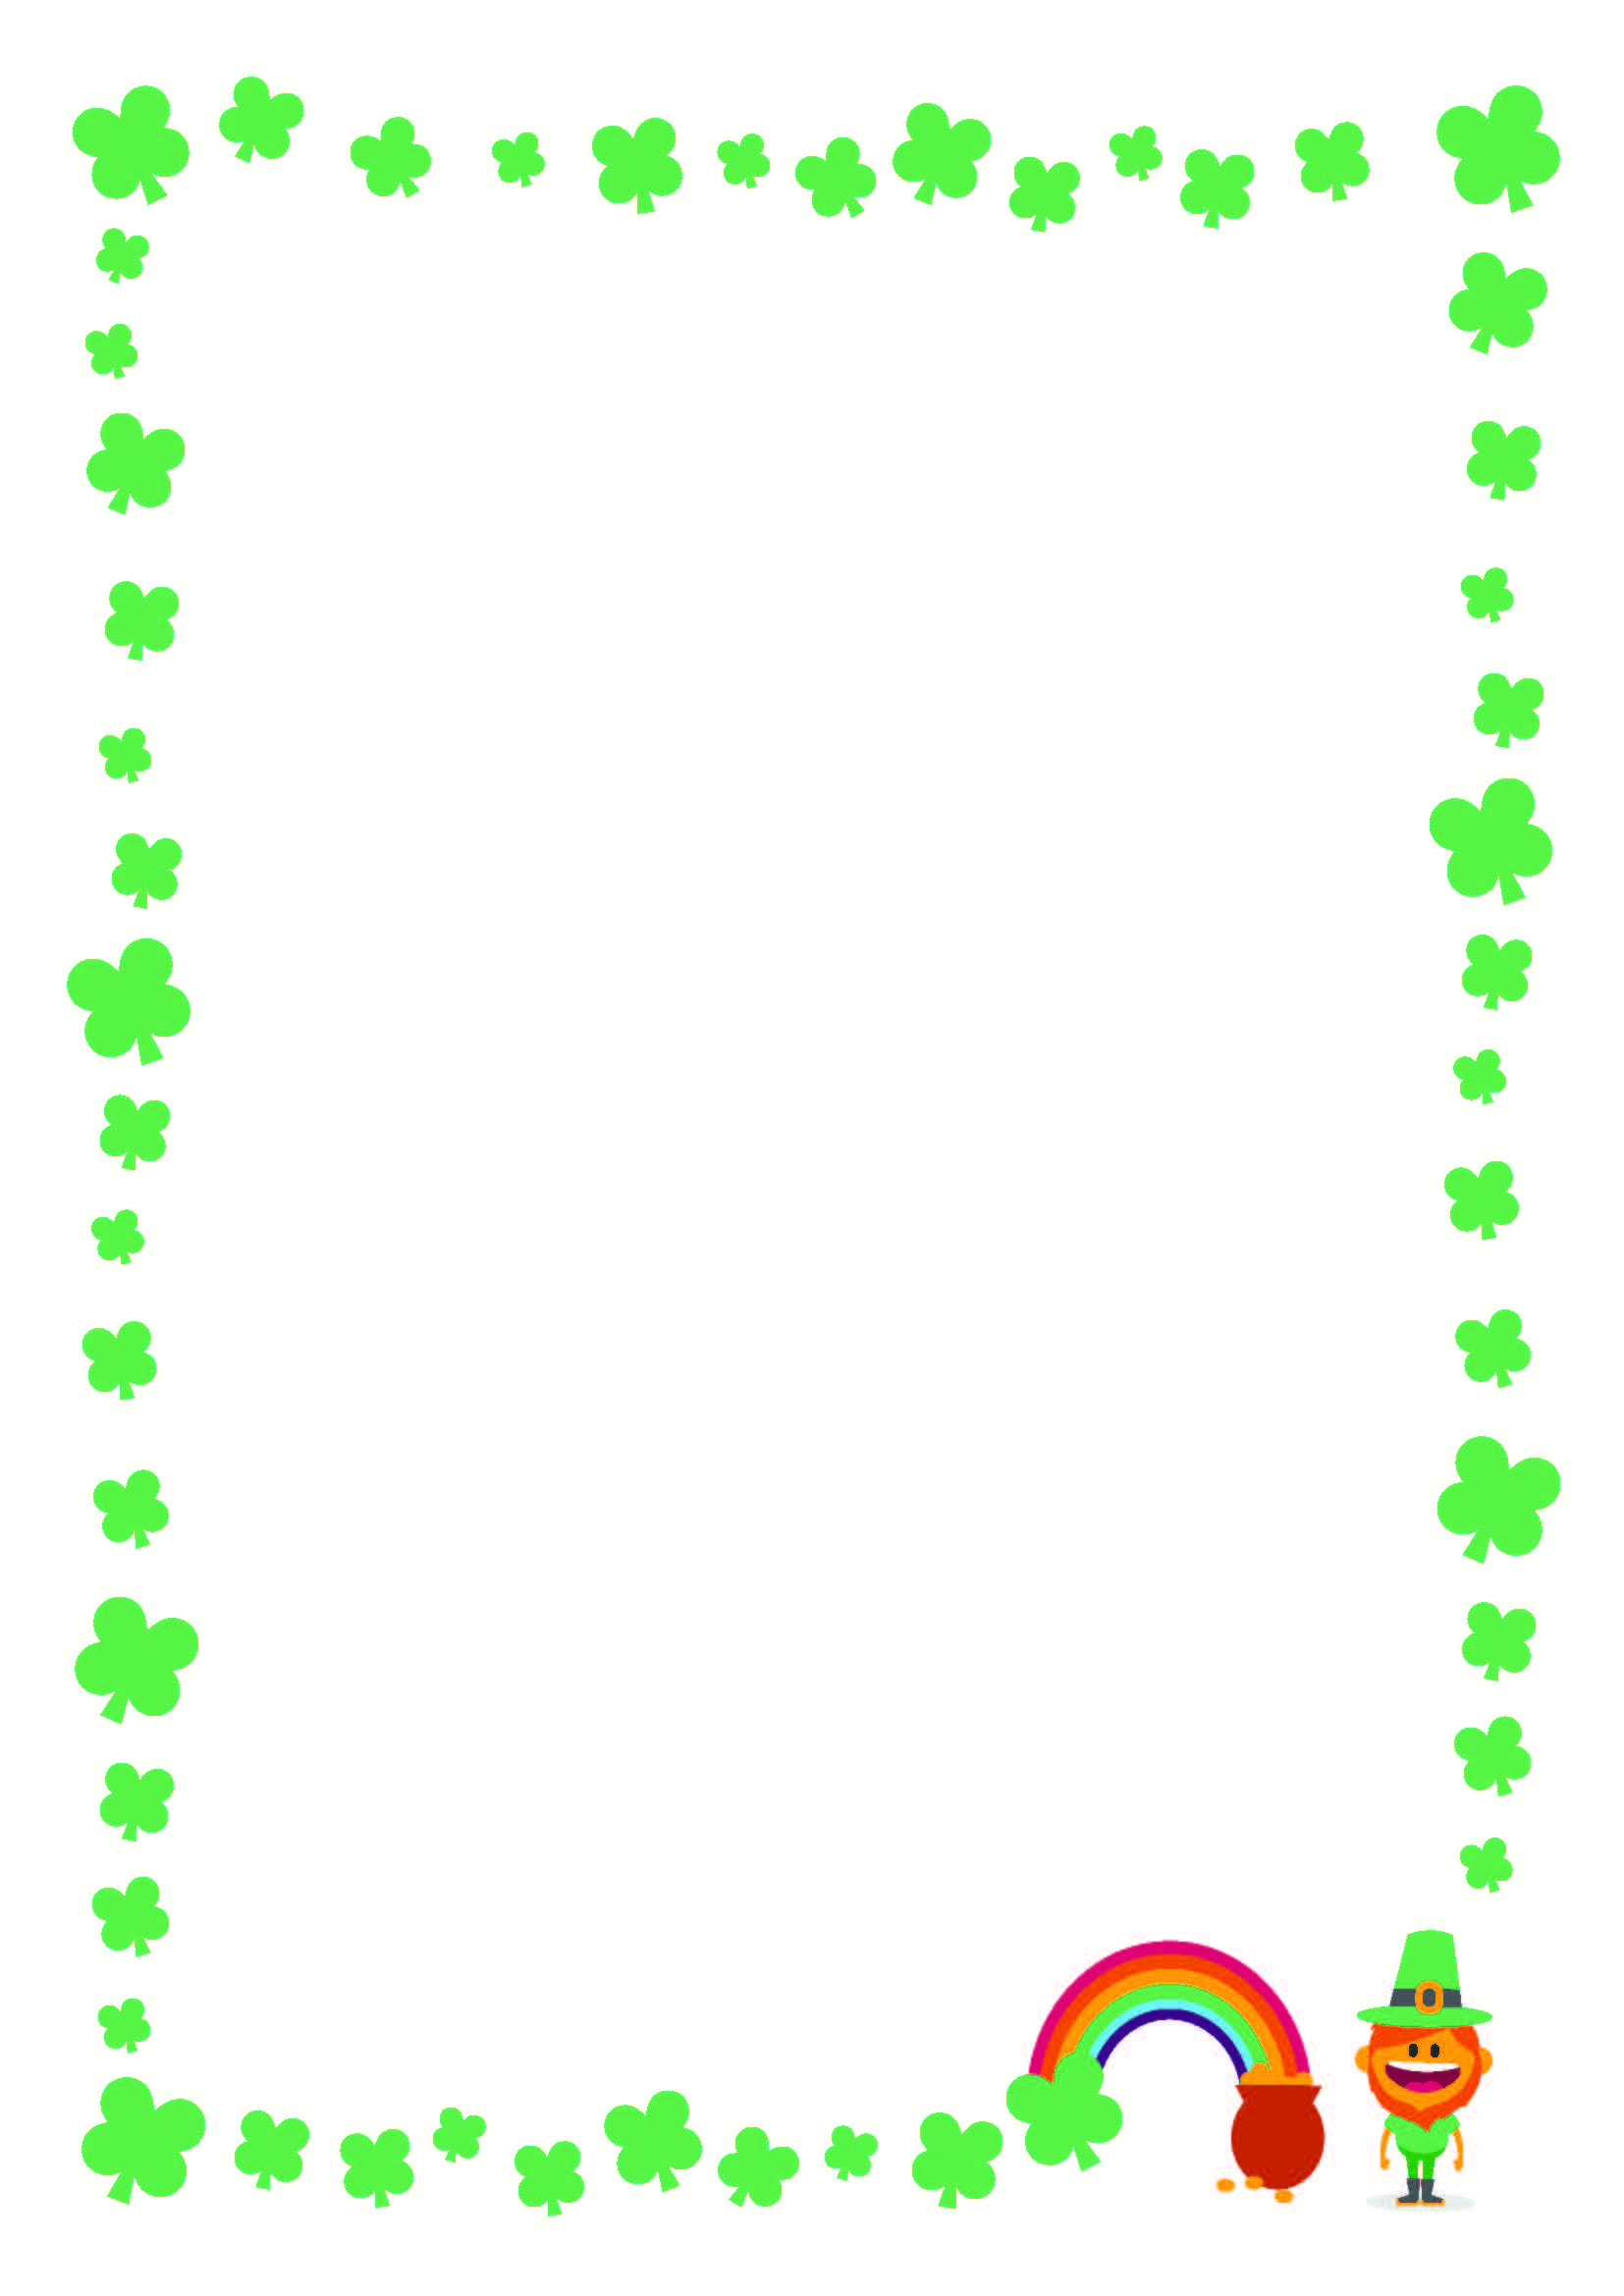 Free St. Patrick's Day Printable Writing Paper With Clover Border - Writing Borders Free Printable